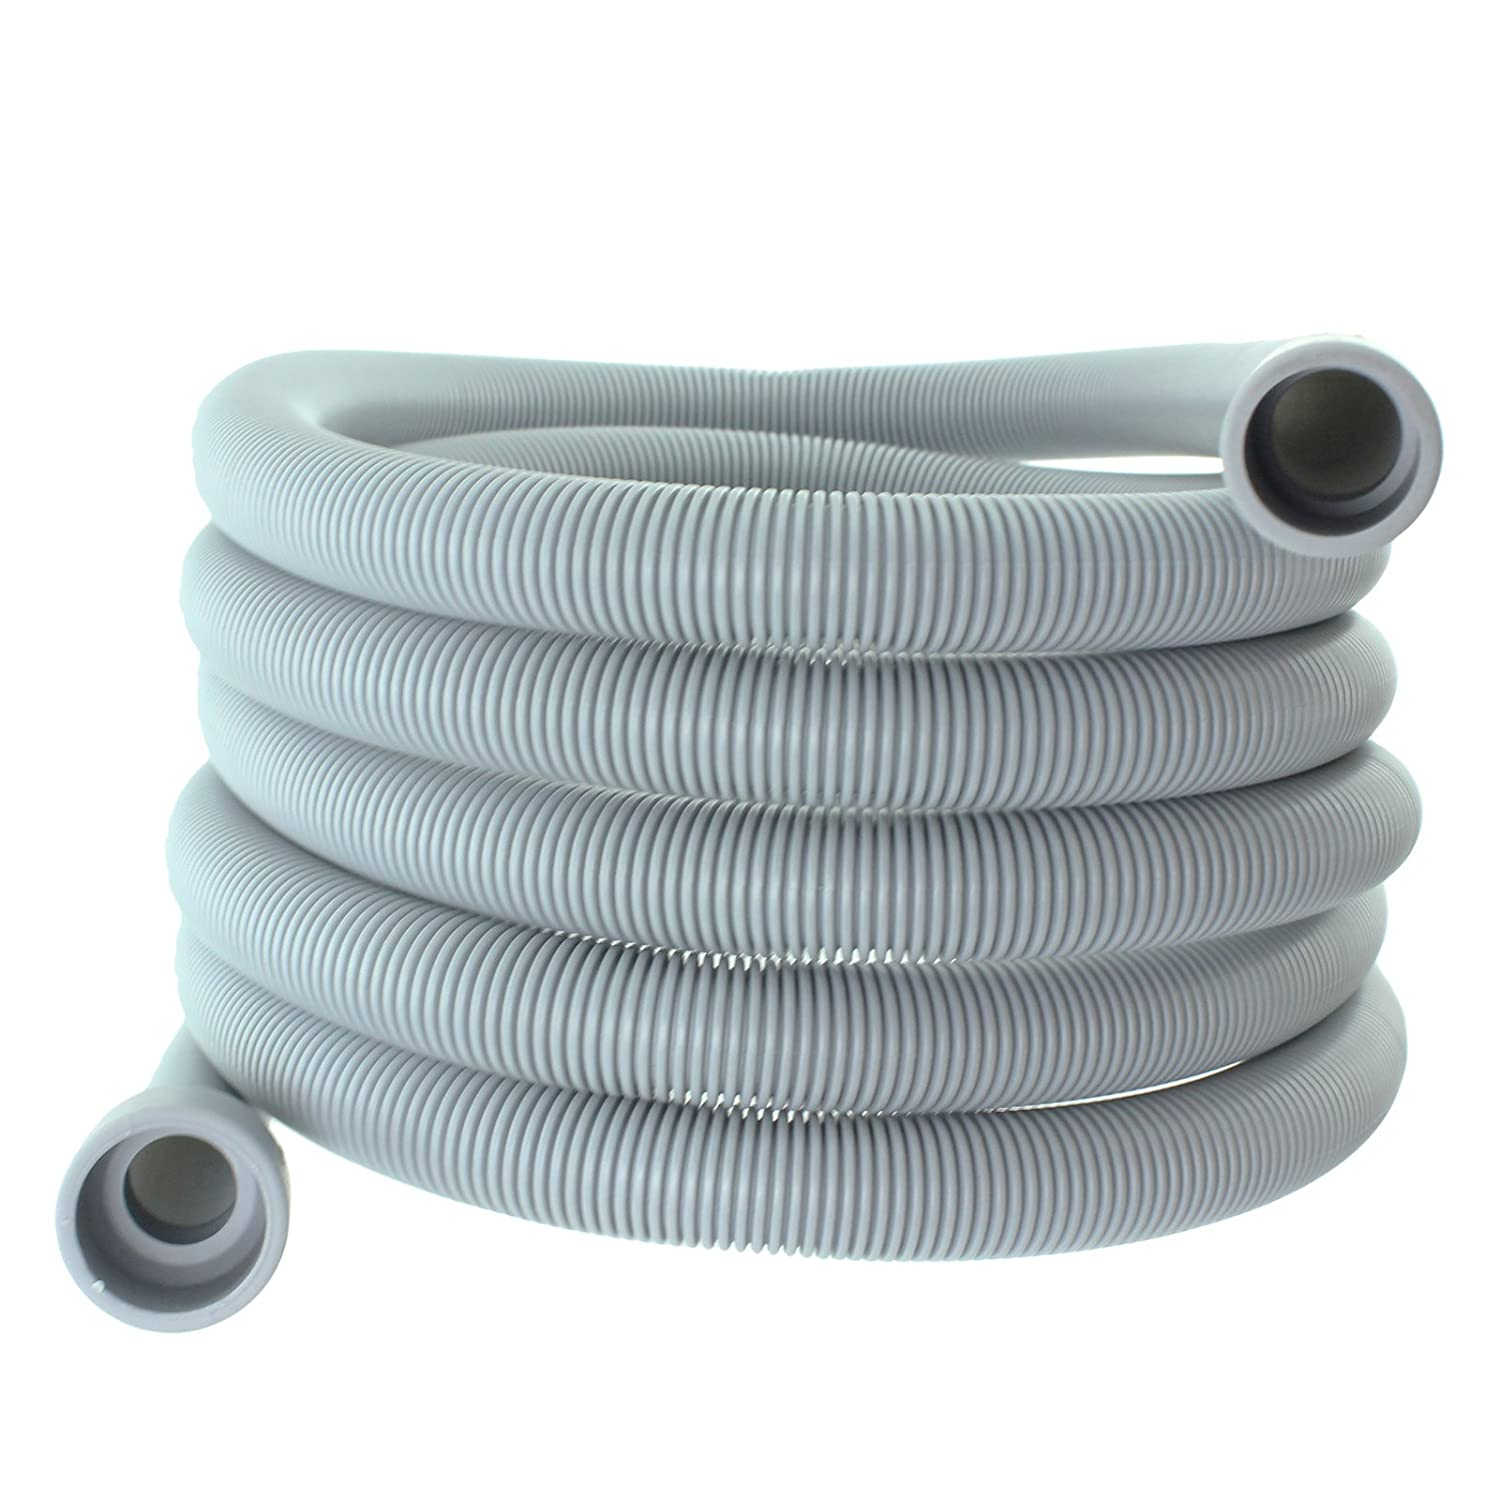 Spares2go Drain Hose Extra Long Water Pipe For Samsung Dishwasher (4M 29Mm & 22Mm Connection)